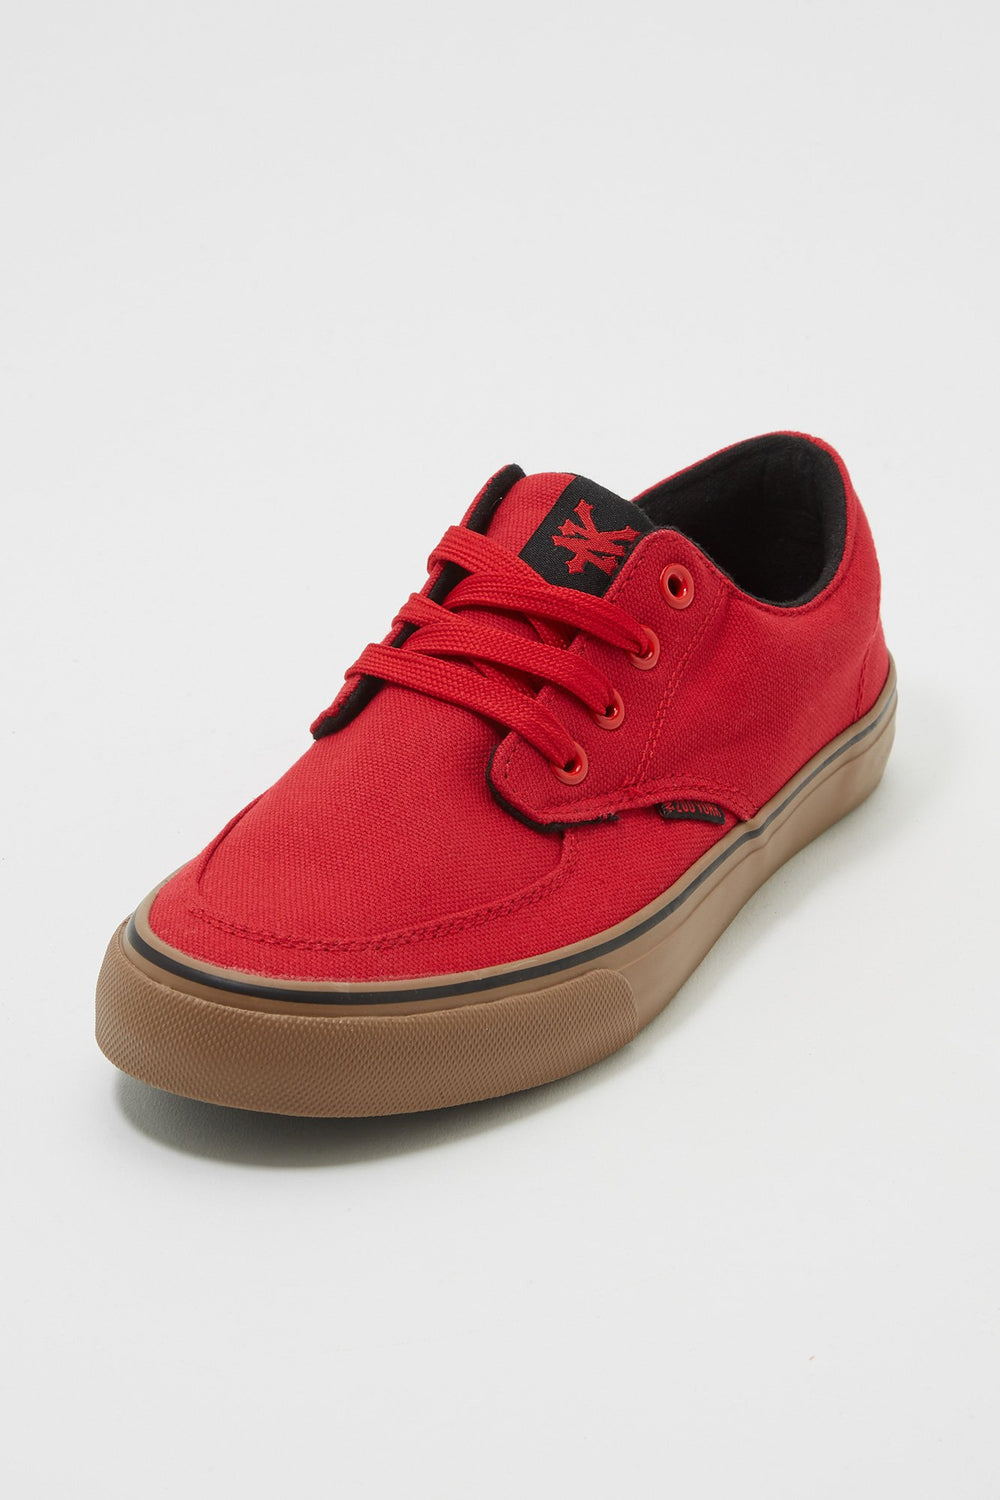 Zoo York Mens Ryan Canvas Shoes Red